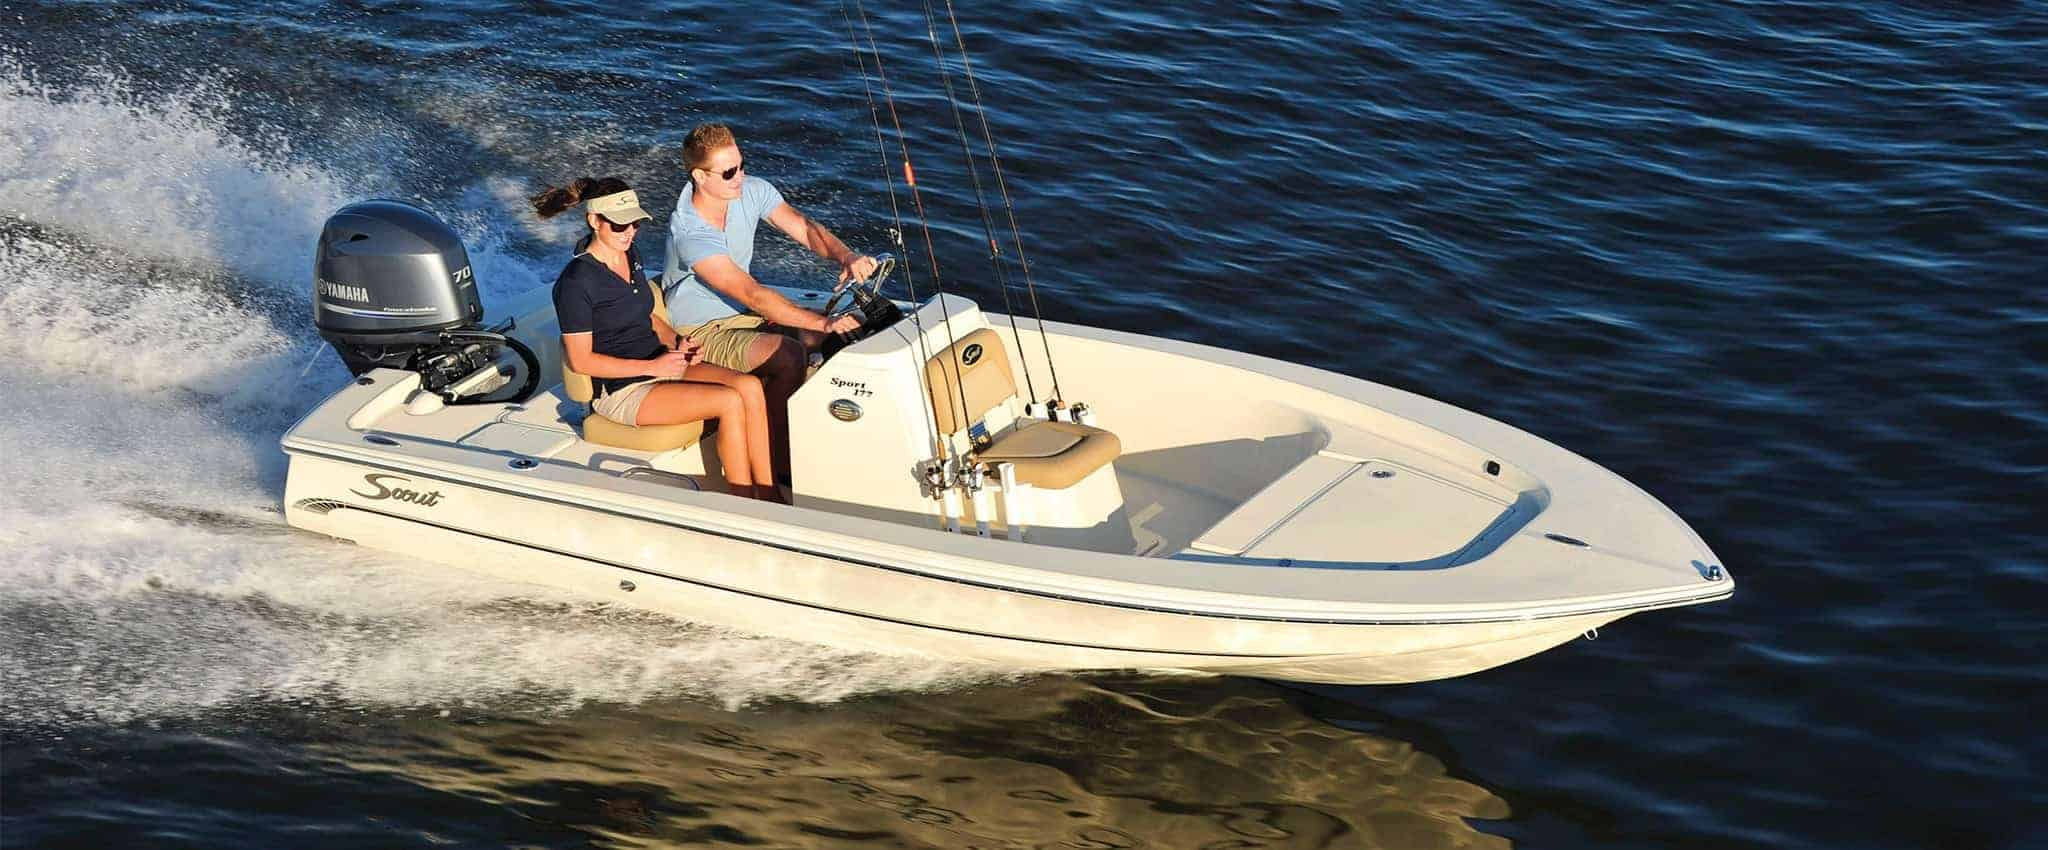 Scout 177 Sport - Center Console Flats Fishing Boat